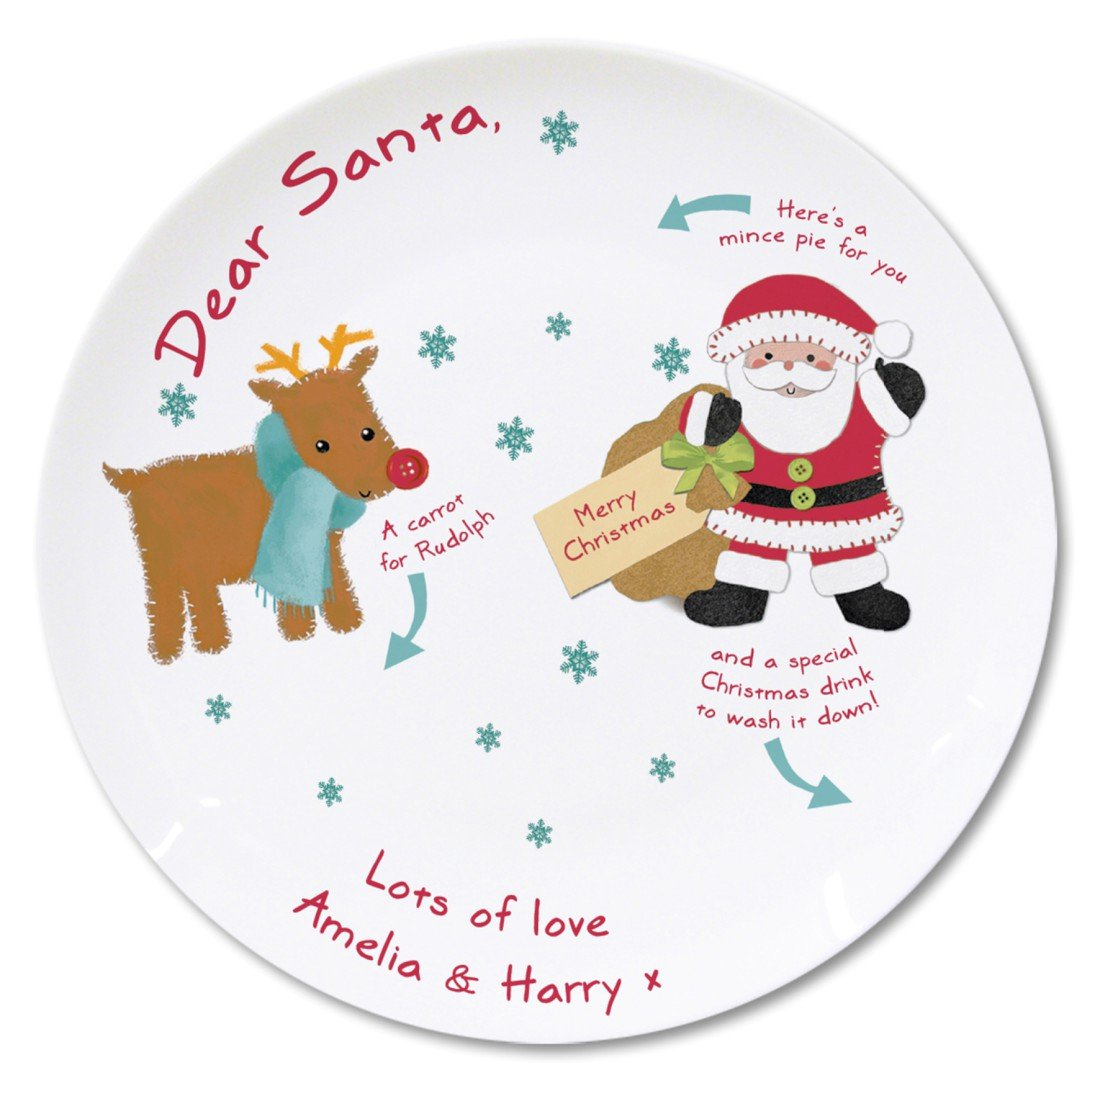 Felt Stitch Friends Mince Pie Plate Gifts, and, Cards Wedding, Gift, Idea Occasion, Gift, Idea Personalised Personalised Memento